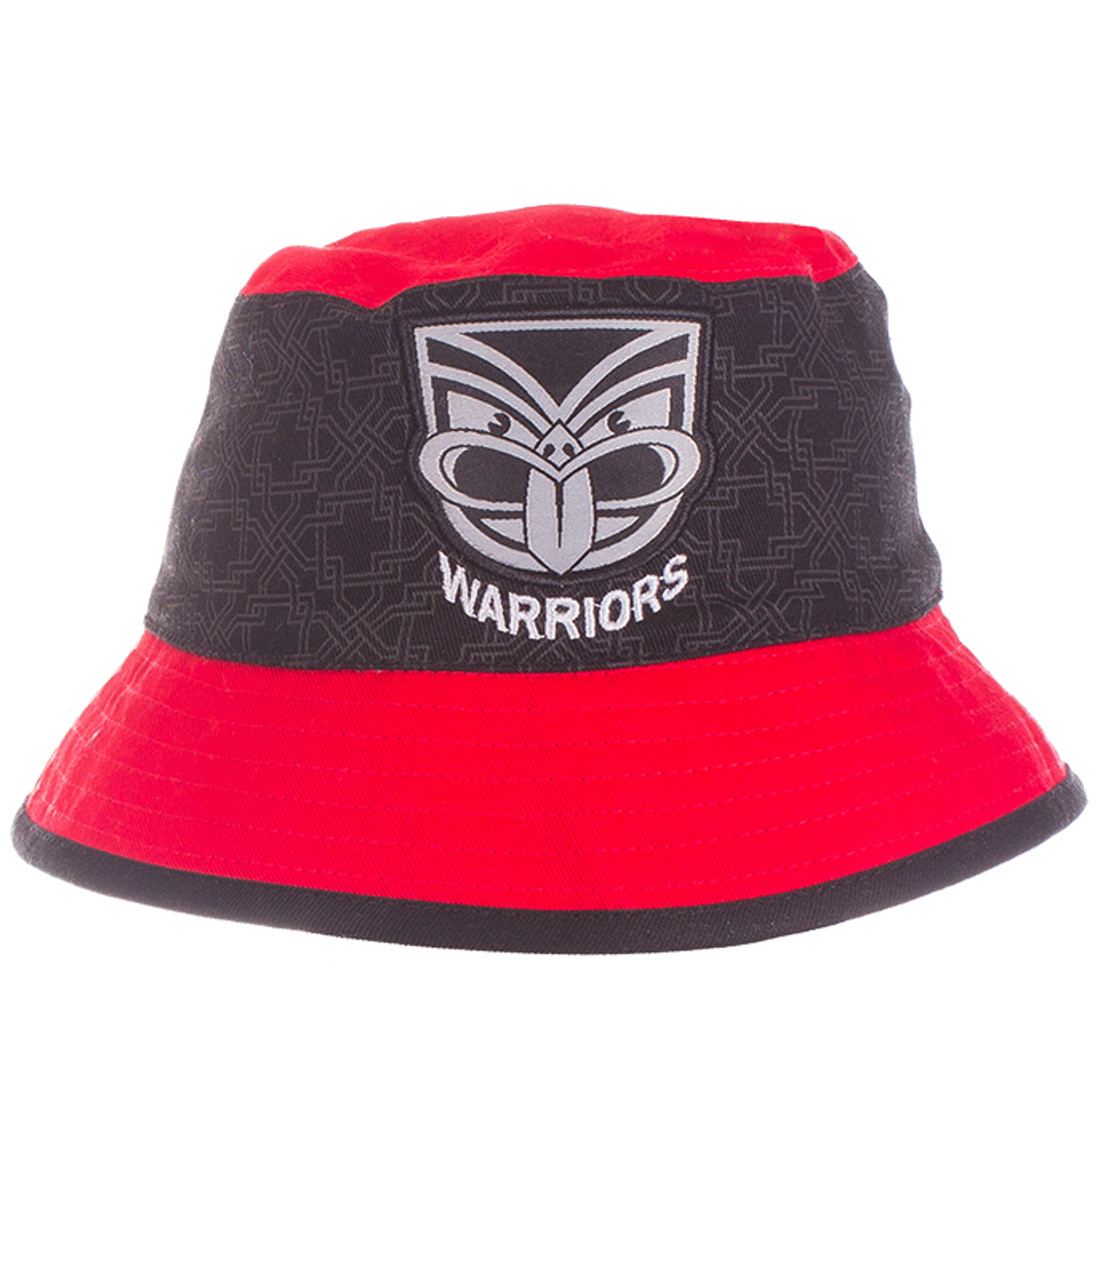 2017 Warriors Infant Bucket Hat - Warriors Superstore b2a8ae90e532